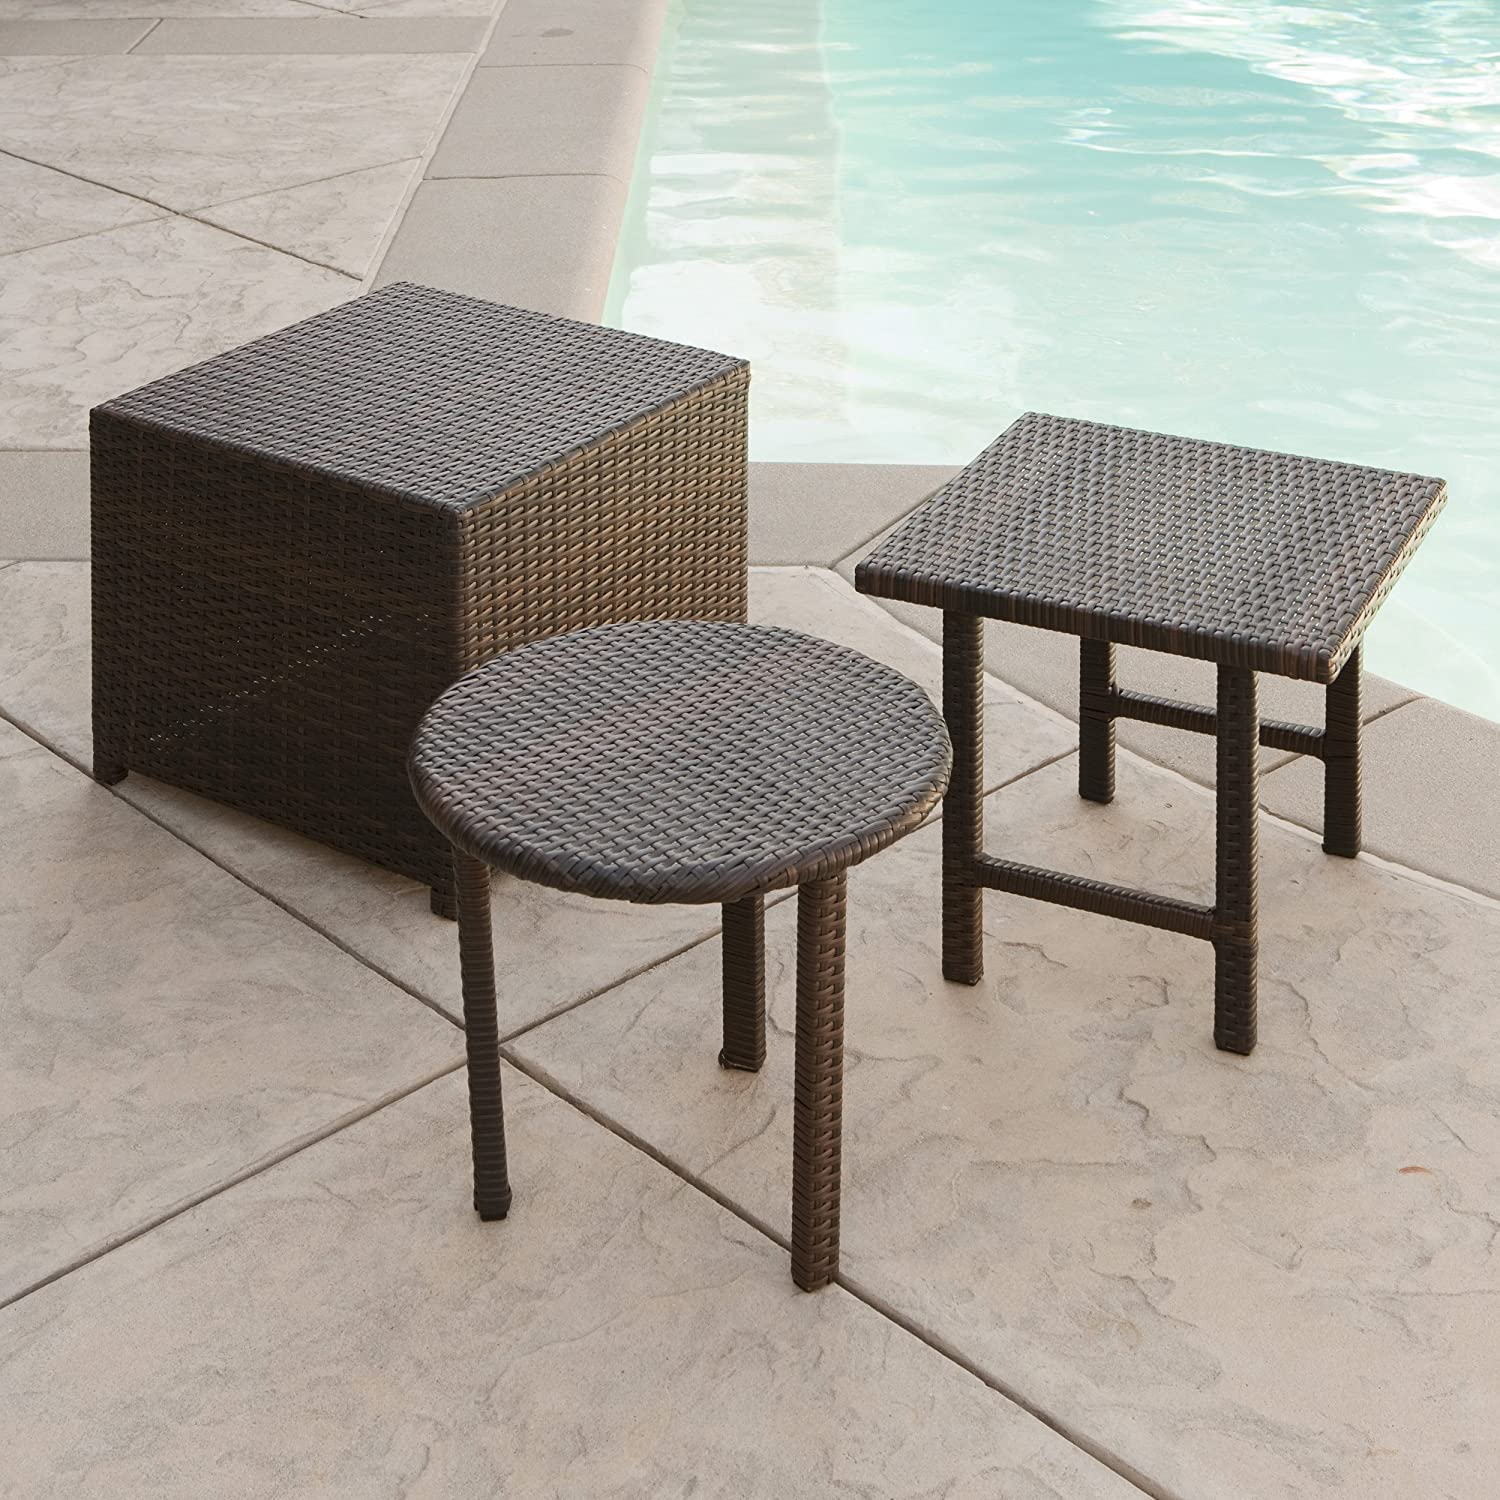 Merveilleux Amazon.com : Best Selling Palmilla Wicker Table Set, Multibrown : Patio  Side Tables : Garden U0026 Outdoor